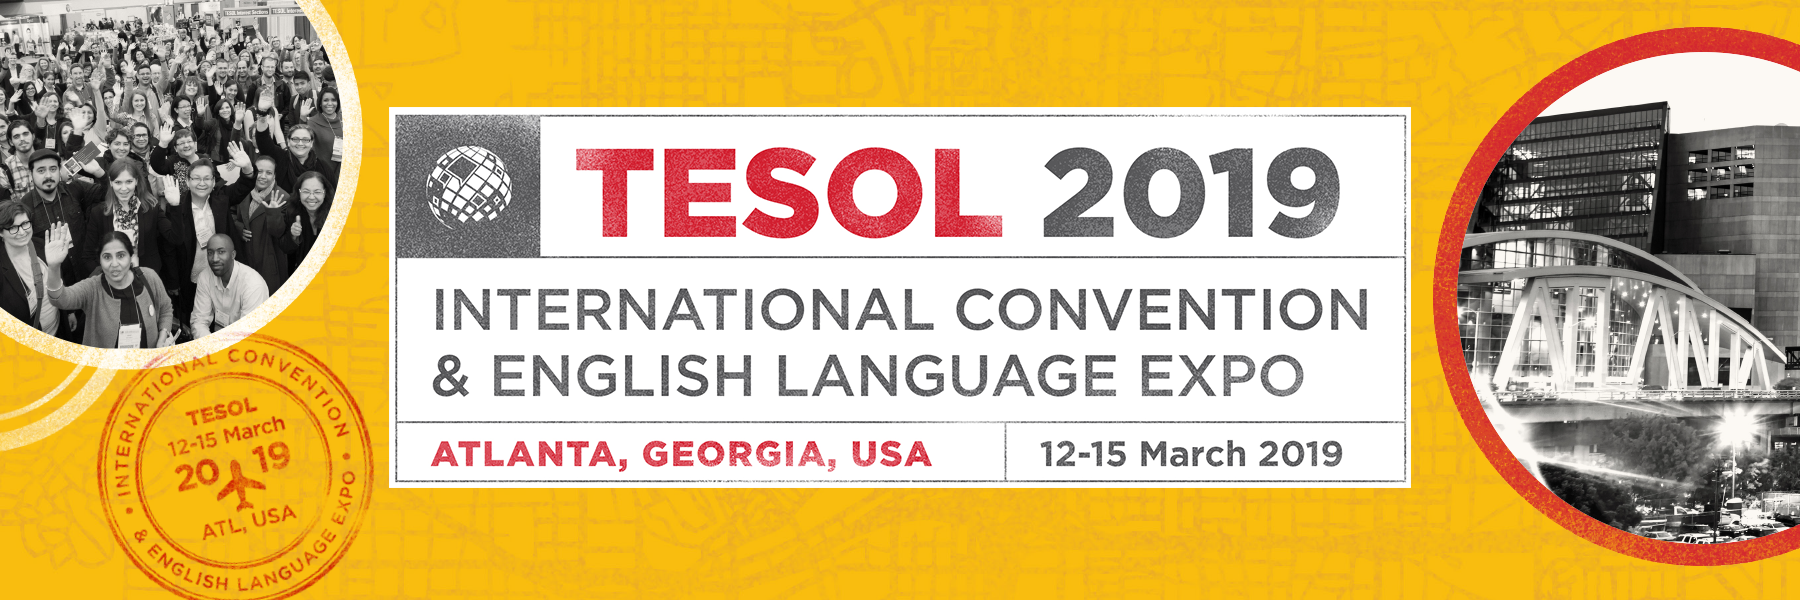 March 12-15: TESOL 2019, the International Convention & English Language Expo